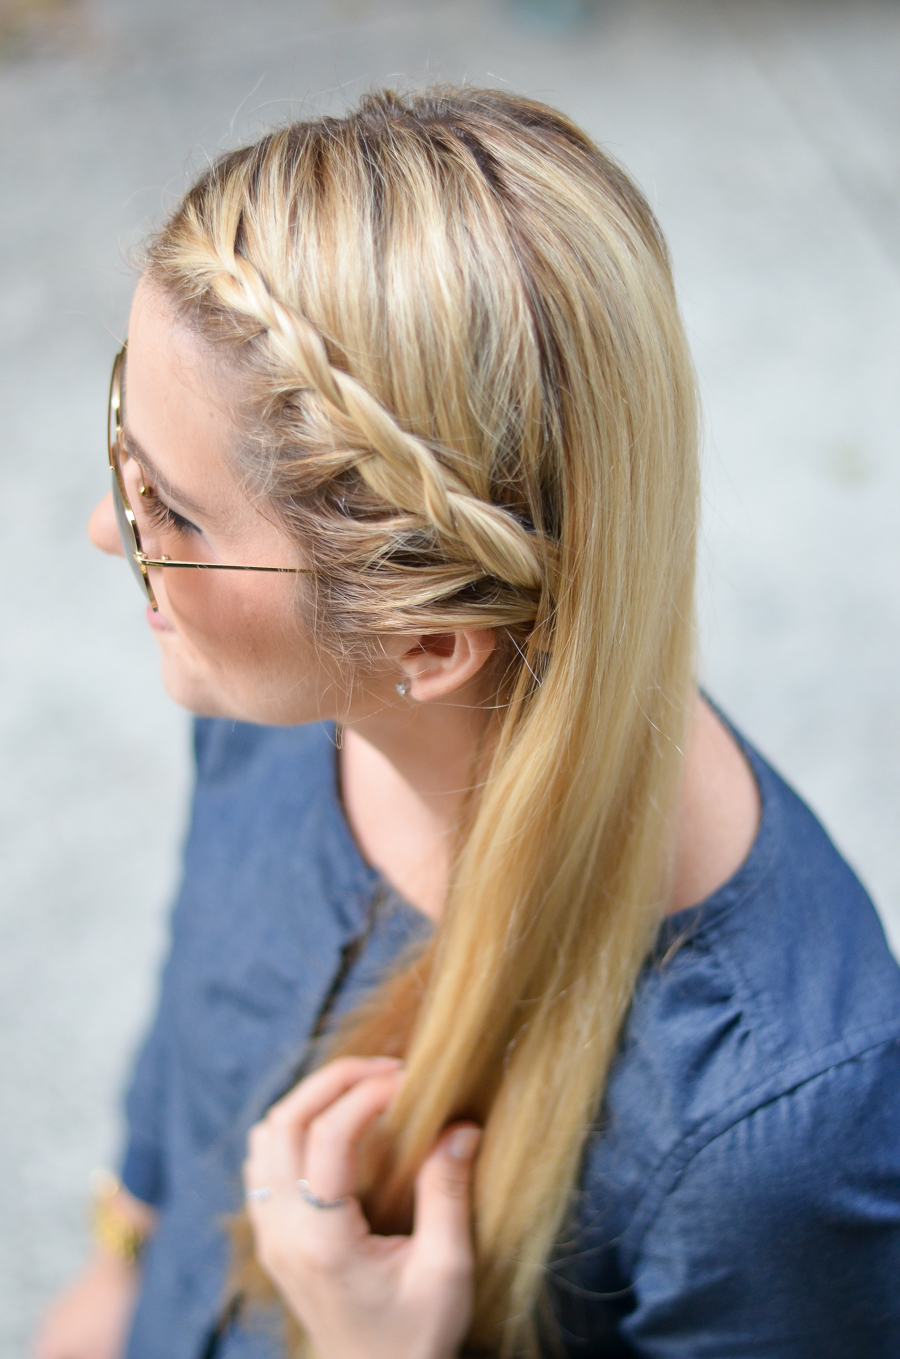 Braided Hairstyles for Spring + Summer